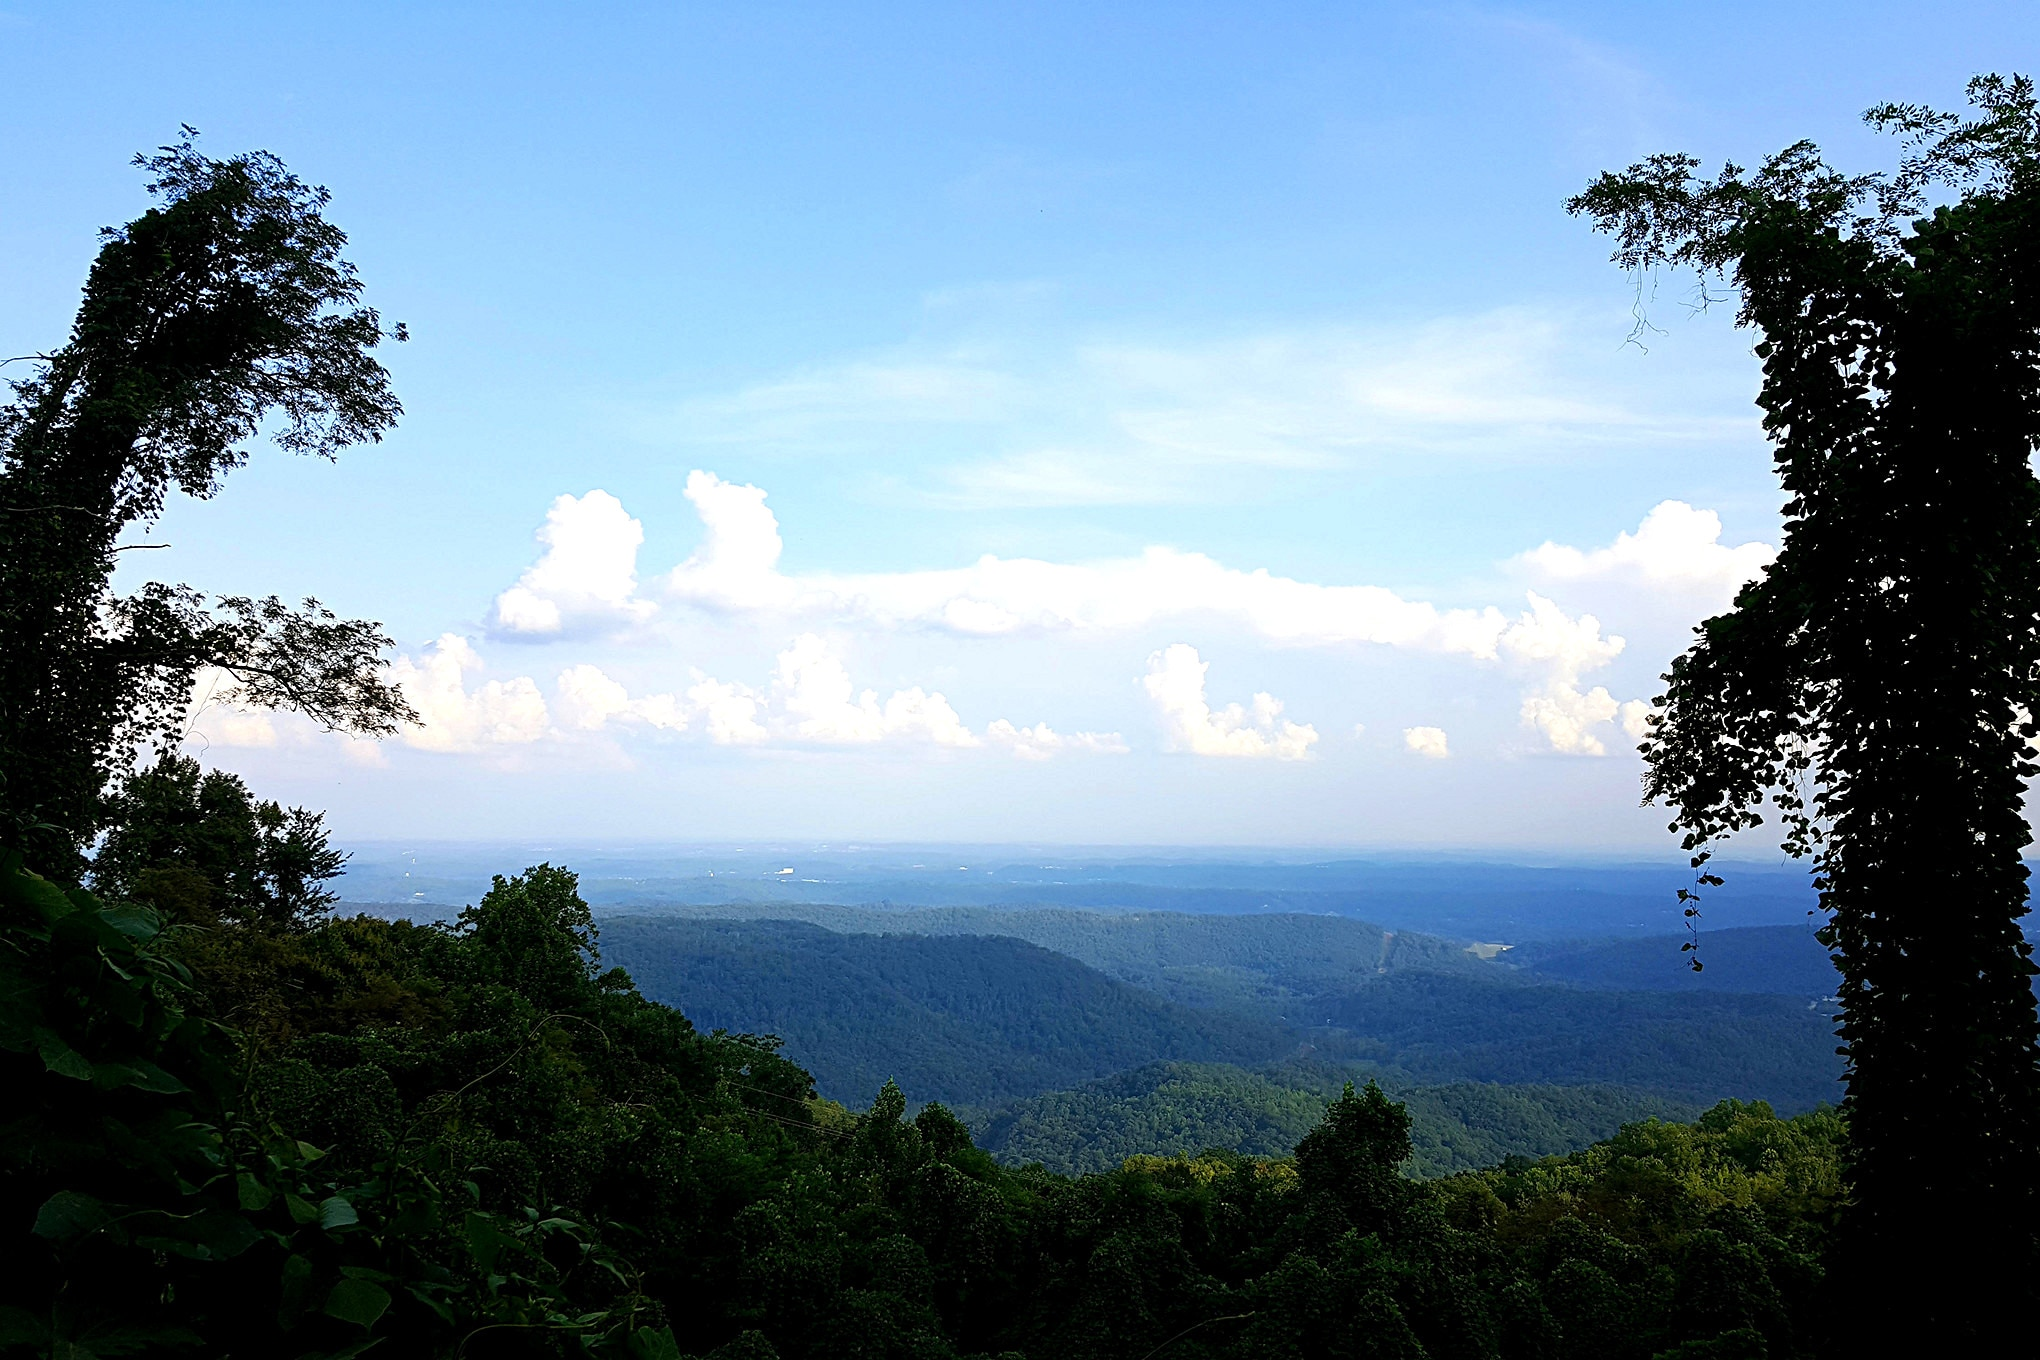 When you reach the main exit road, you are treated to some amazing views of the Appalachian Mountains and the Cumberland Plateau from elevations nearly 3,000 feet above sea level.